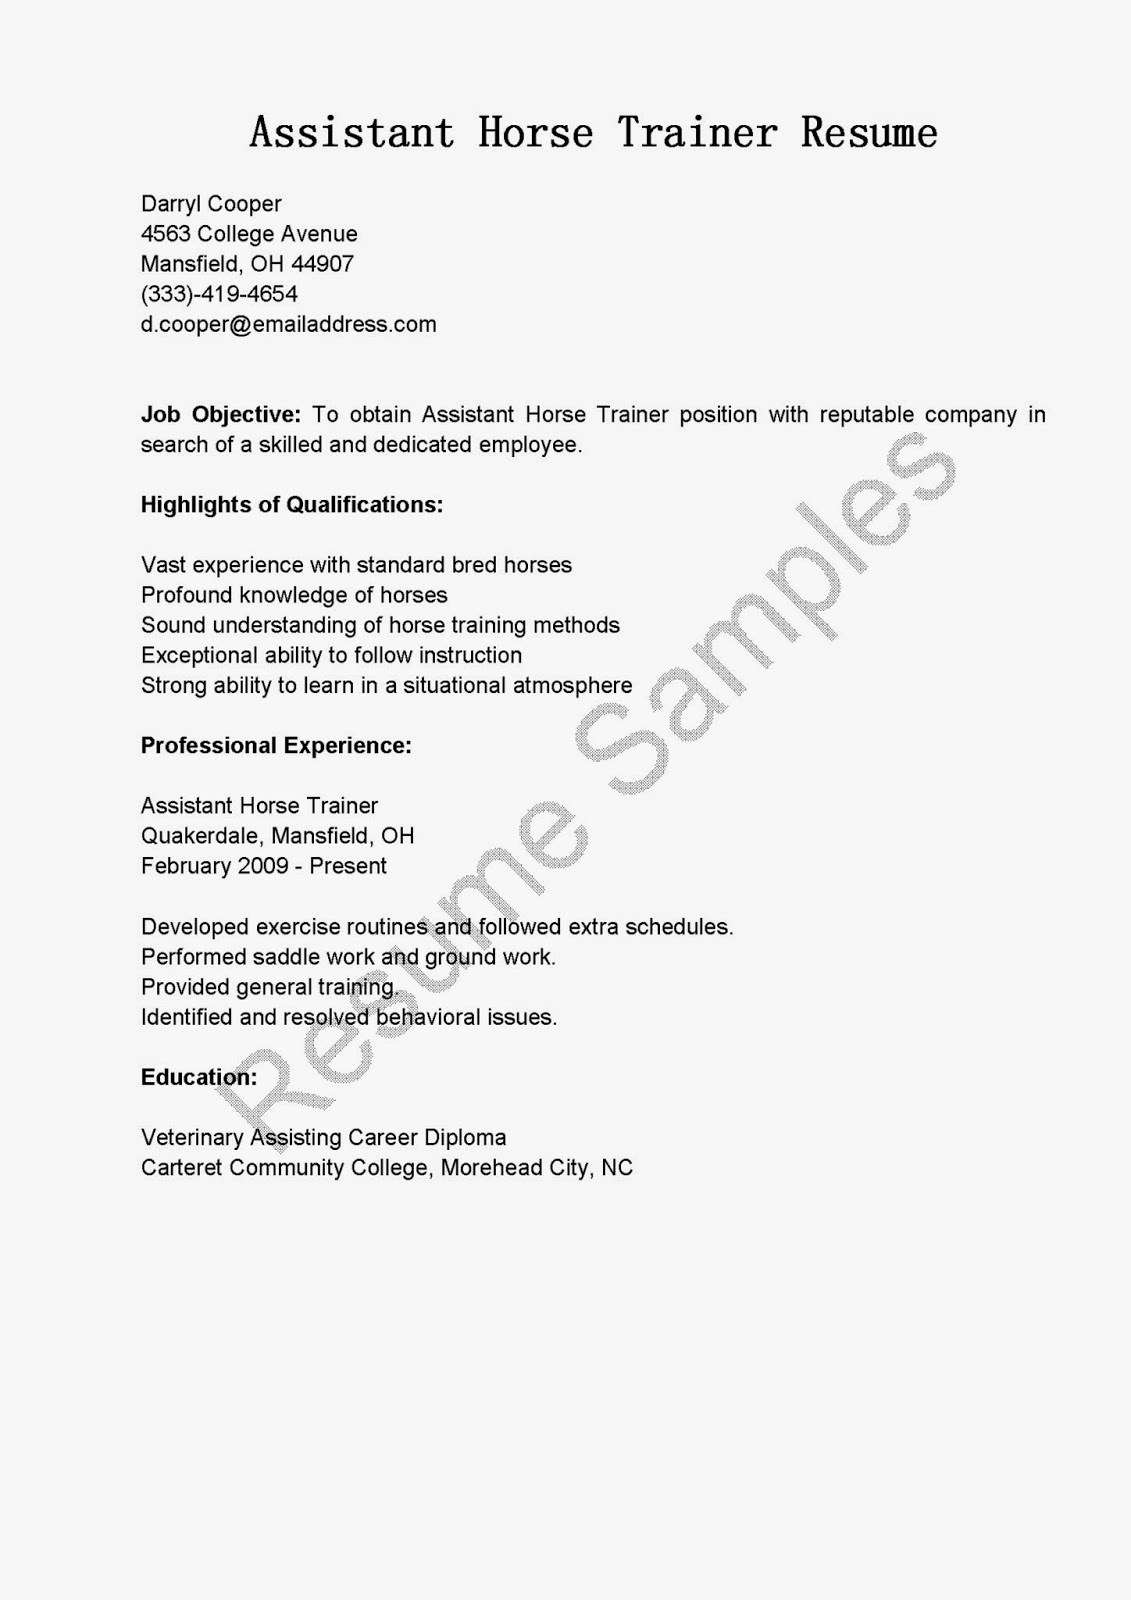 Resume Samples Assistant Horse Trainer Sample